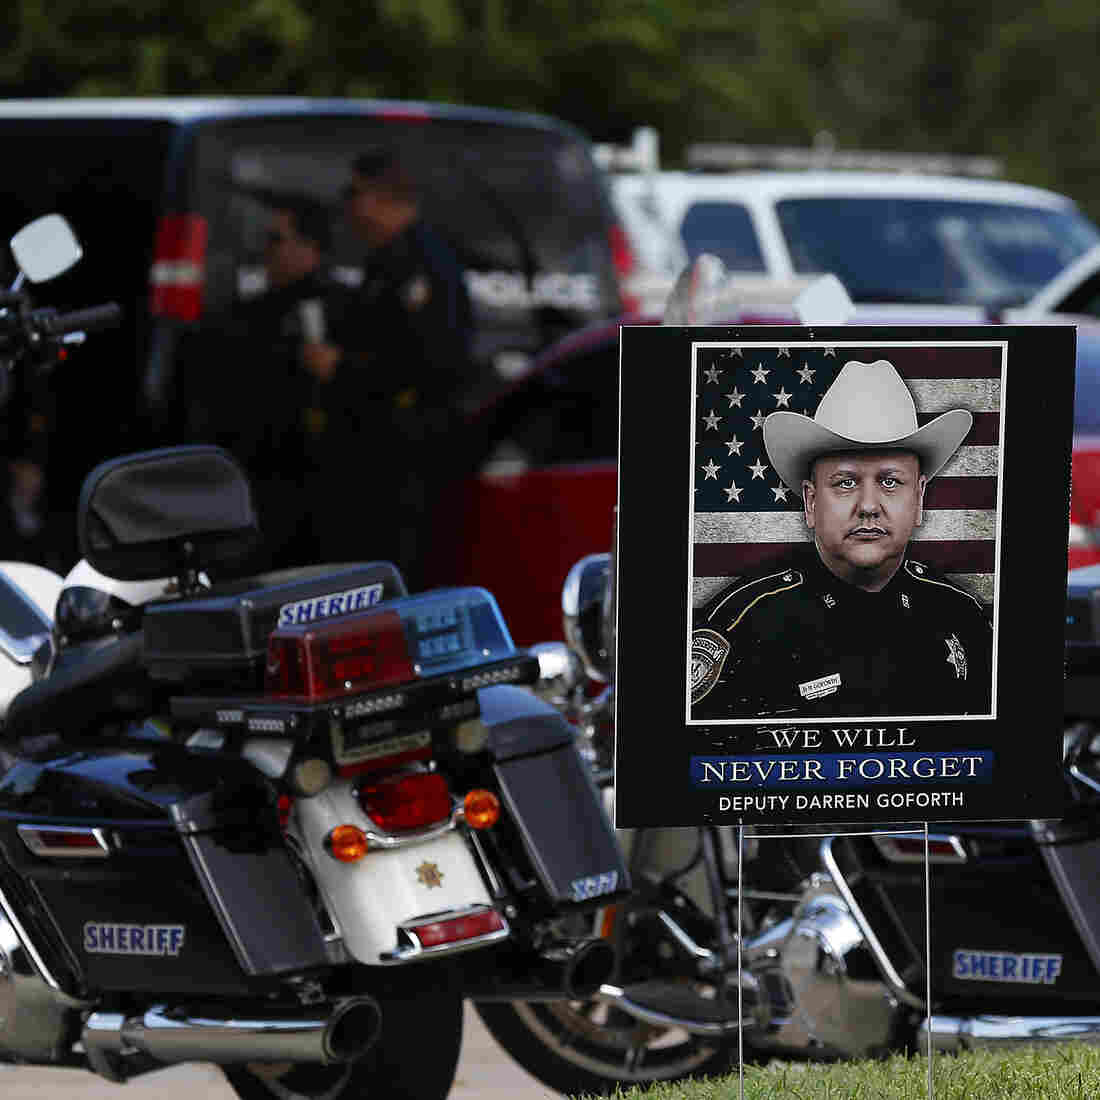 """The funeral for Harris County Sheriff Deputy Darren Goforth was held Sept. 4 in Houston. After Goforth was fatally shot at a gas station on Aug. 29, some spoke about a """"war on cops."""" But while 2014 did see more officer deaths than 2013, one expert says that's not a sign of a statistically significant spike."""